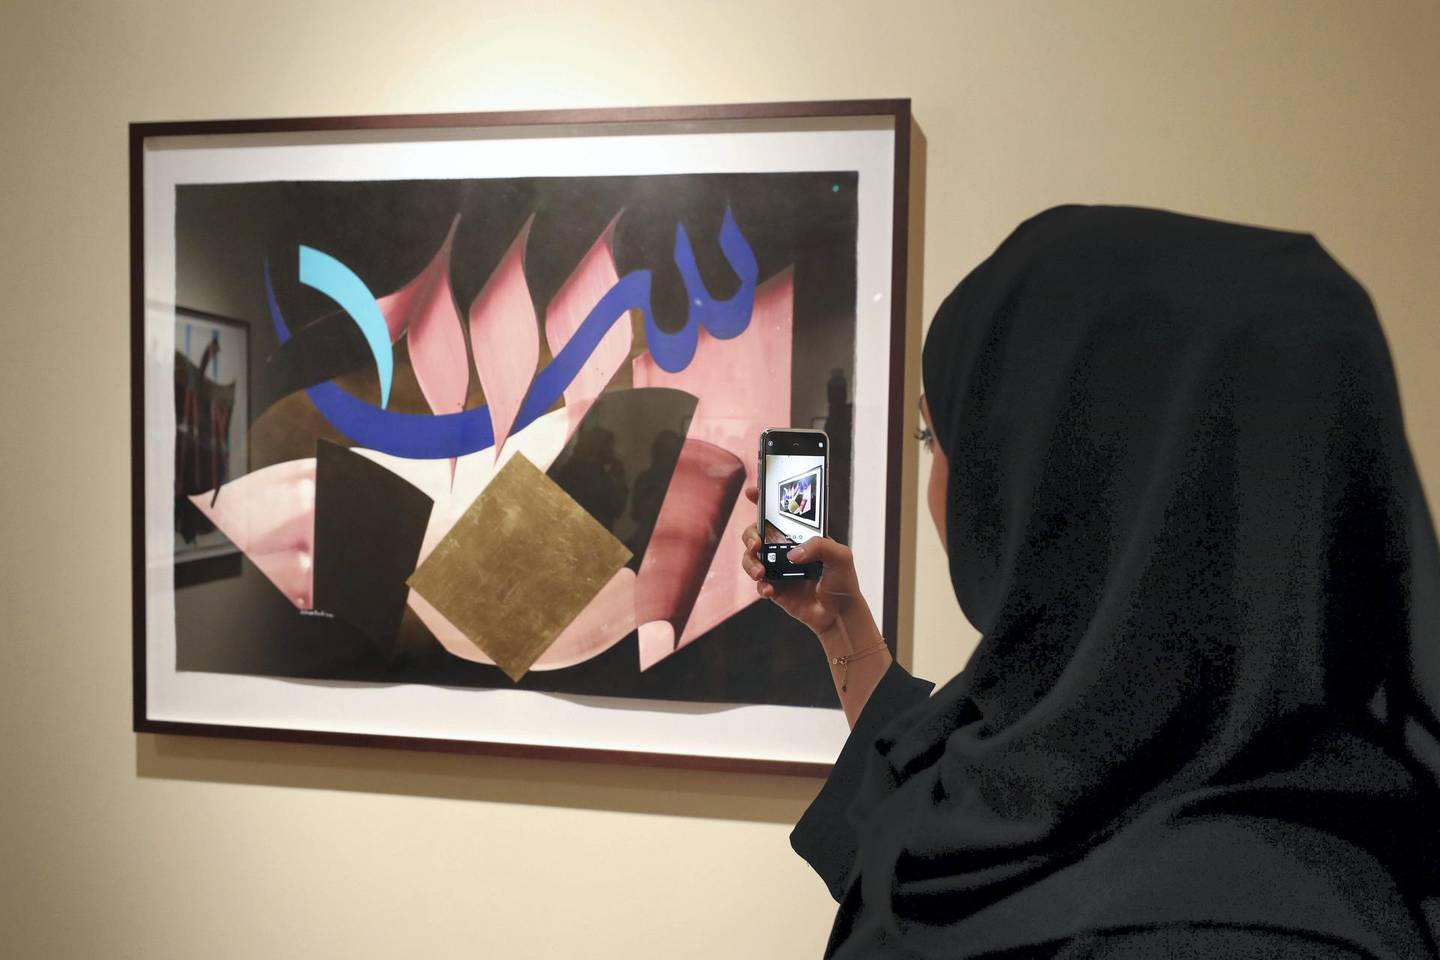 Sharjah, United Arab Emirates - November 04, 2019: Sharjah Calligraphy Museum opens new exhibition ÔMusic of LettersÕ, artwork by Bahman Panahi. Monday the 4th of November 2019. Sharjah. Chris Whiteoak / The National